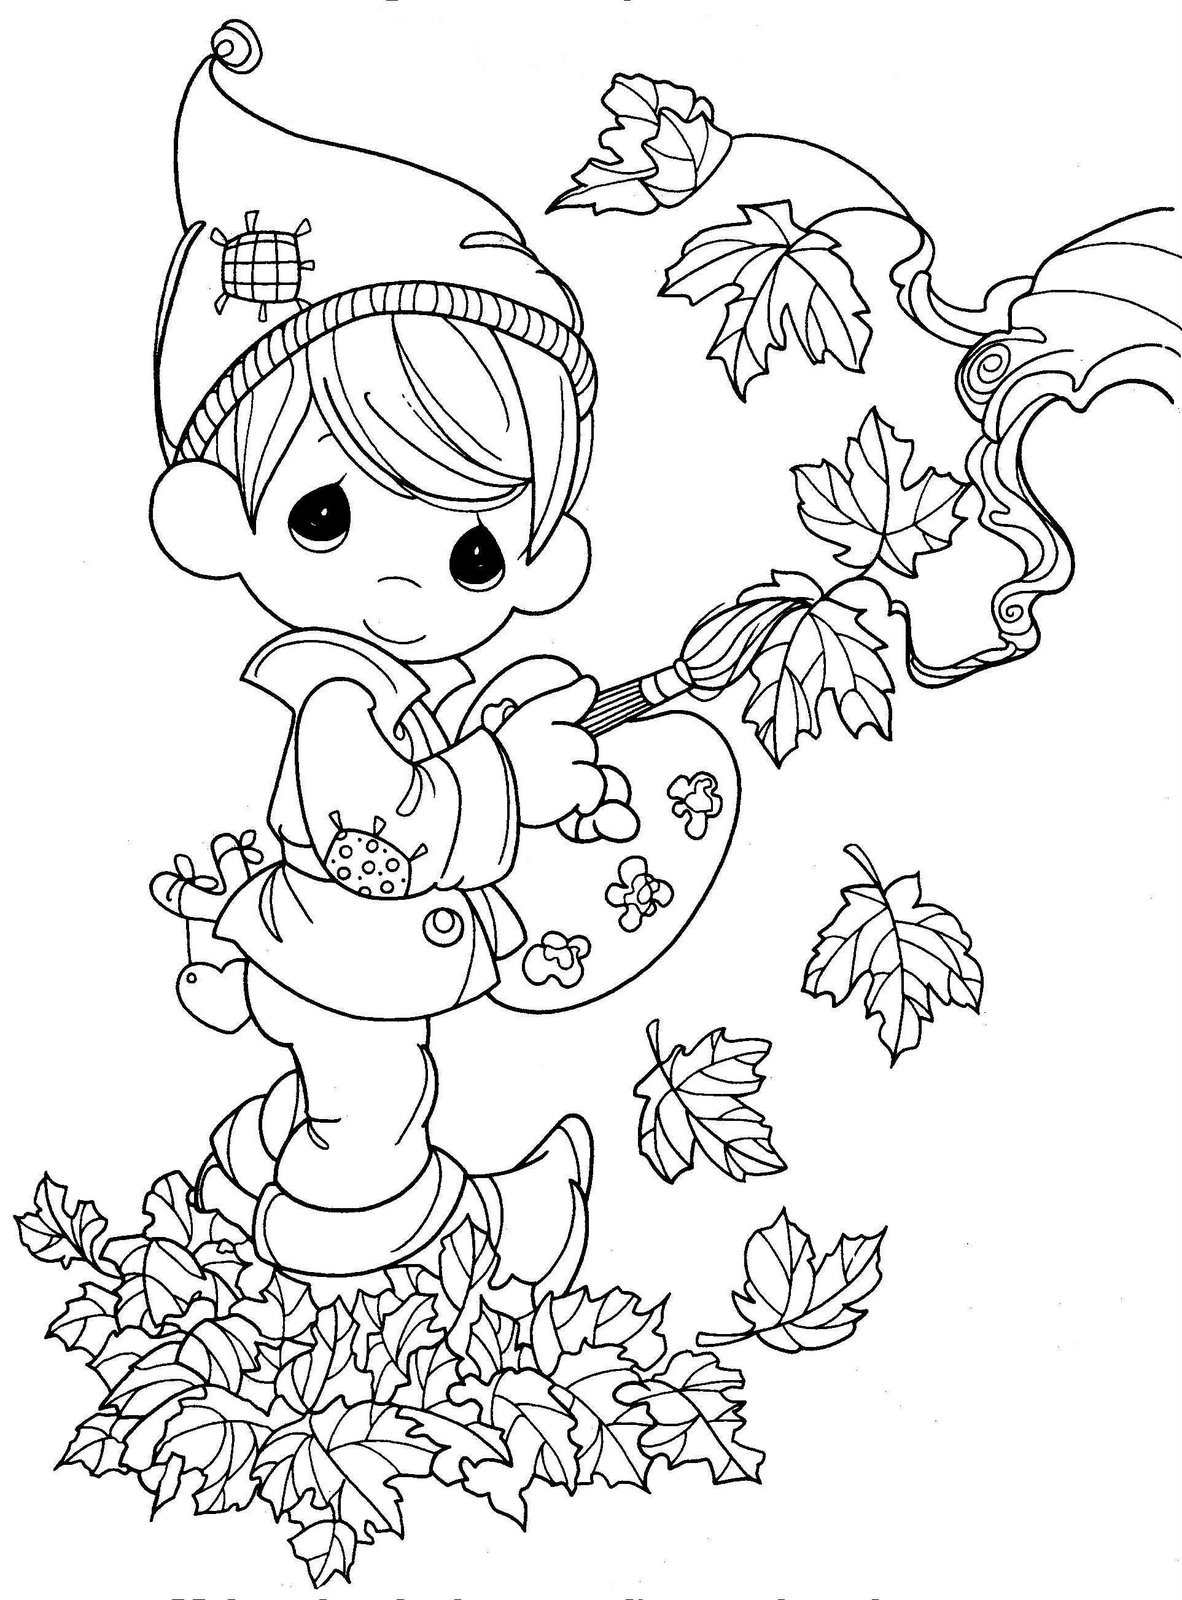 thanksgiving printables coloring pages - Thanksgiving Printable Coloring Pages